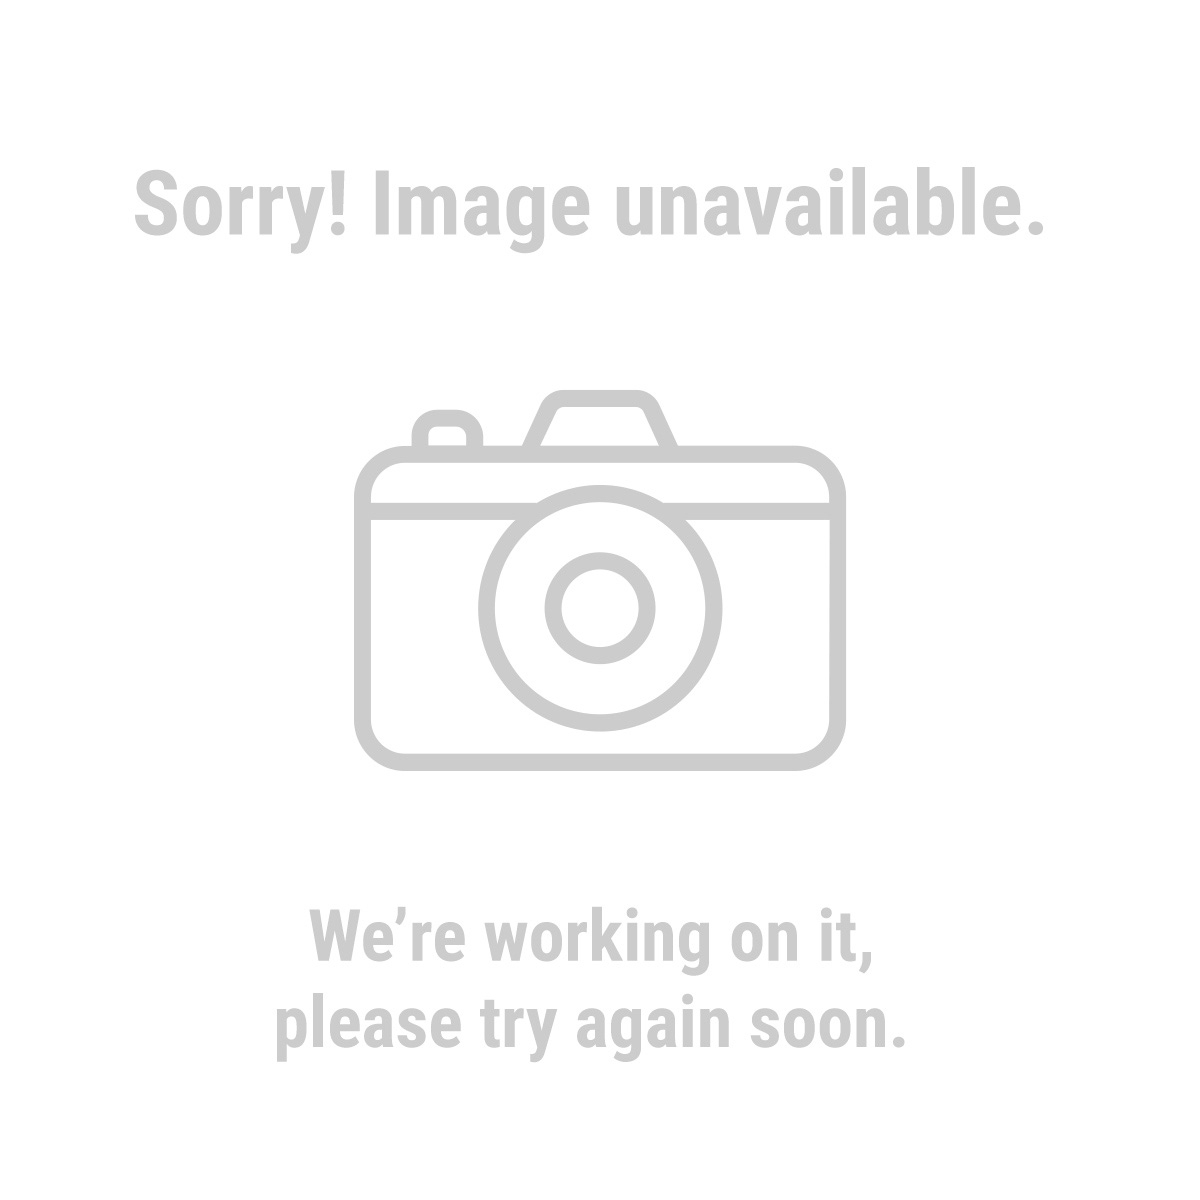 Pittsburgh 5645 Multi-Position Magnetic Base with Fine Adjustment